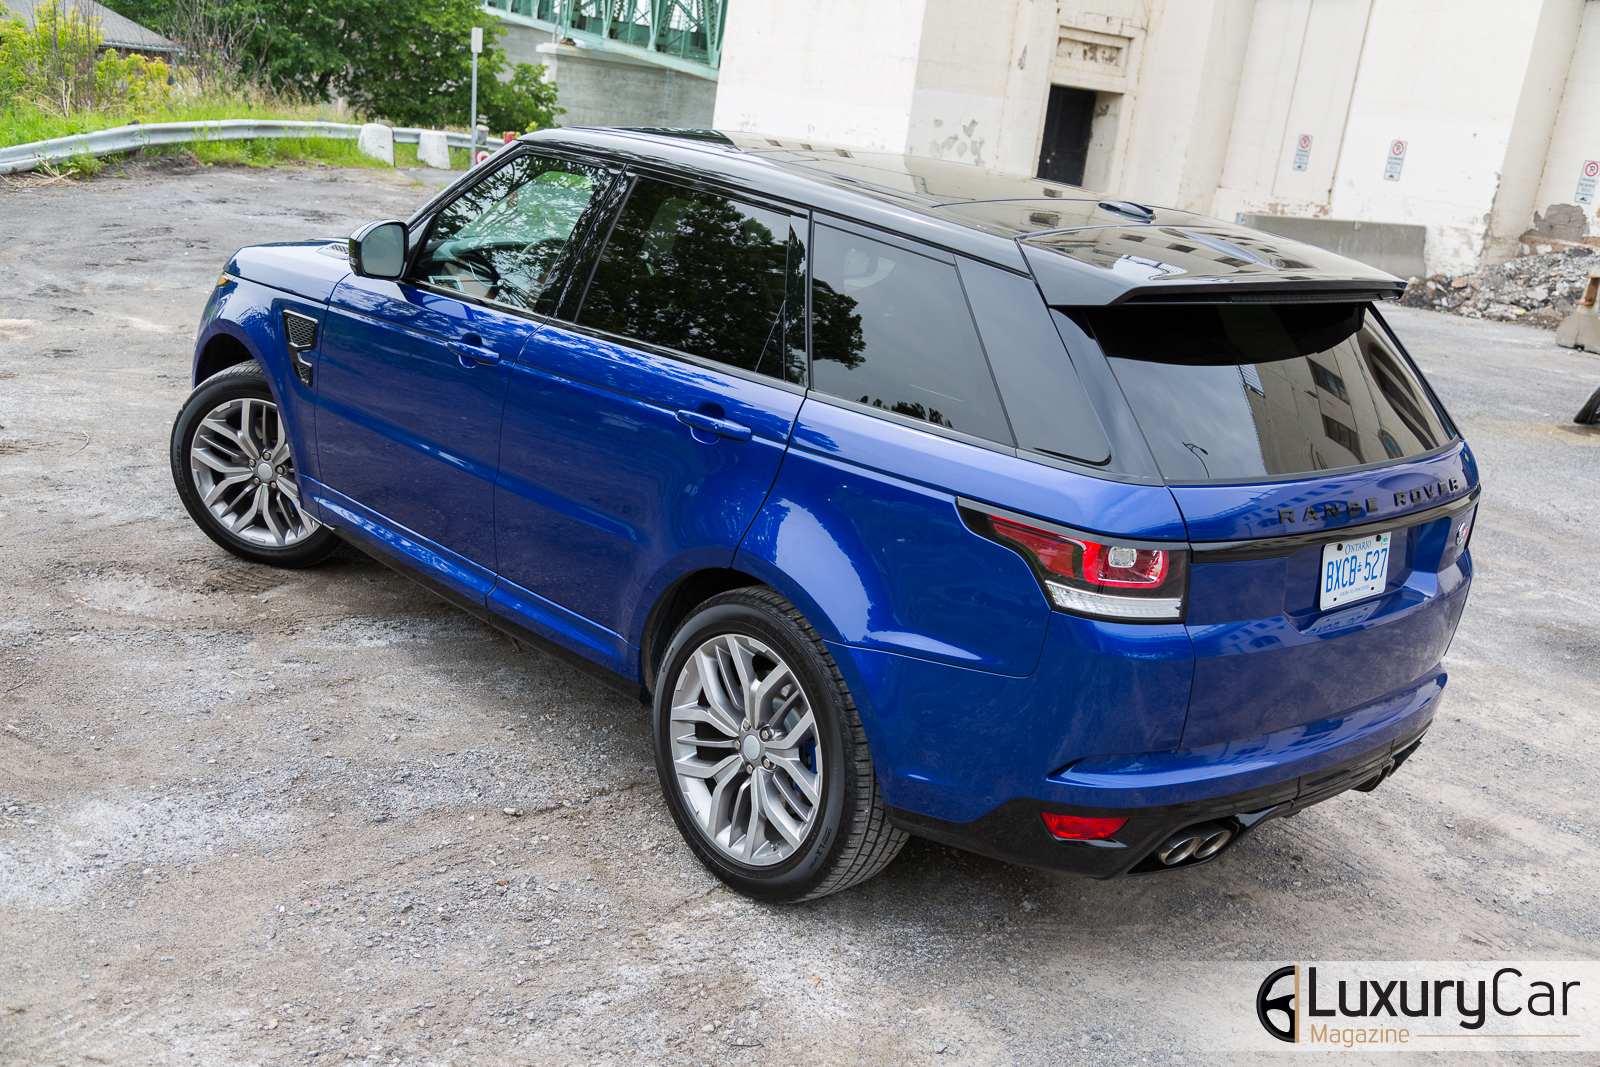 essai routier range rover sport svr 2015 faire diff rent. Black Bedroom Furniture Sets. Home Design Ideas